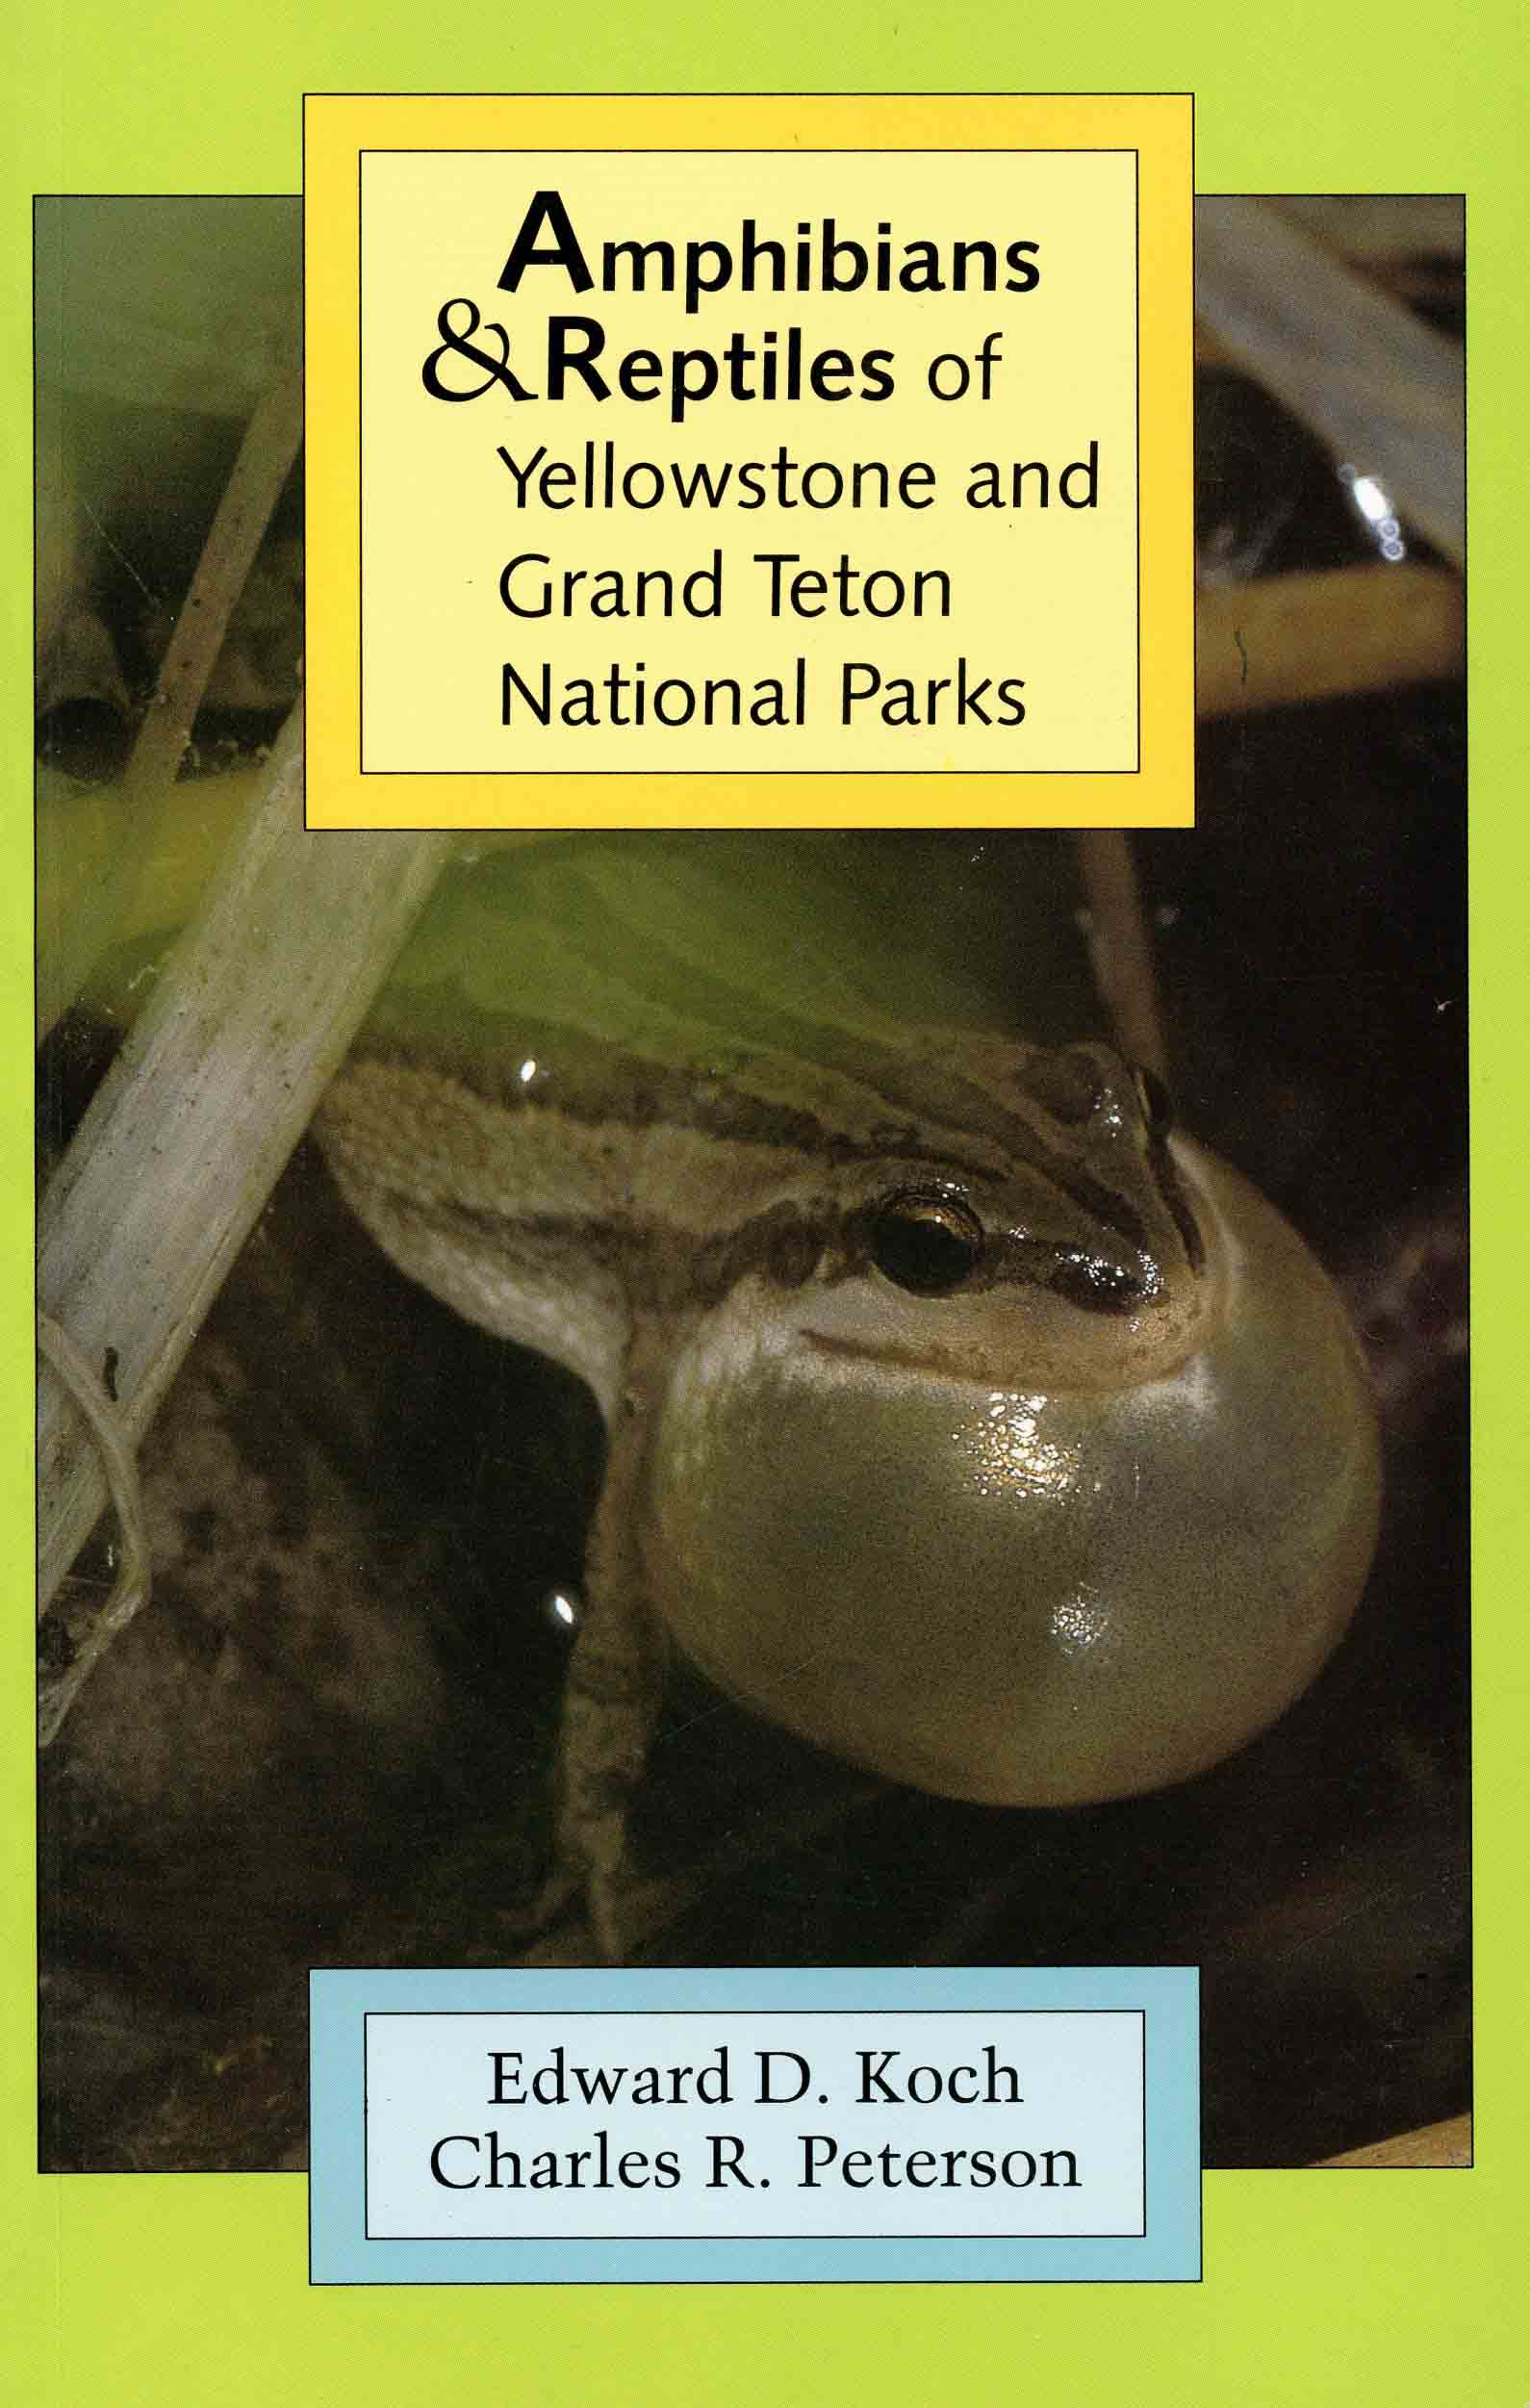 Image for Amphibians & Reptiles of Yellowstone and Grand Teton National Parks